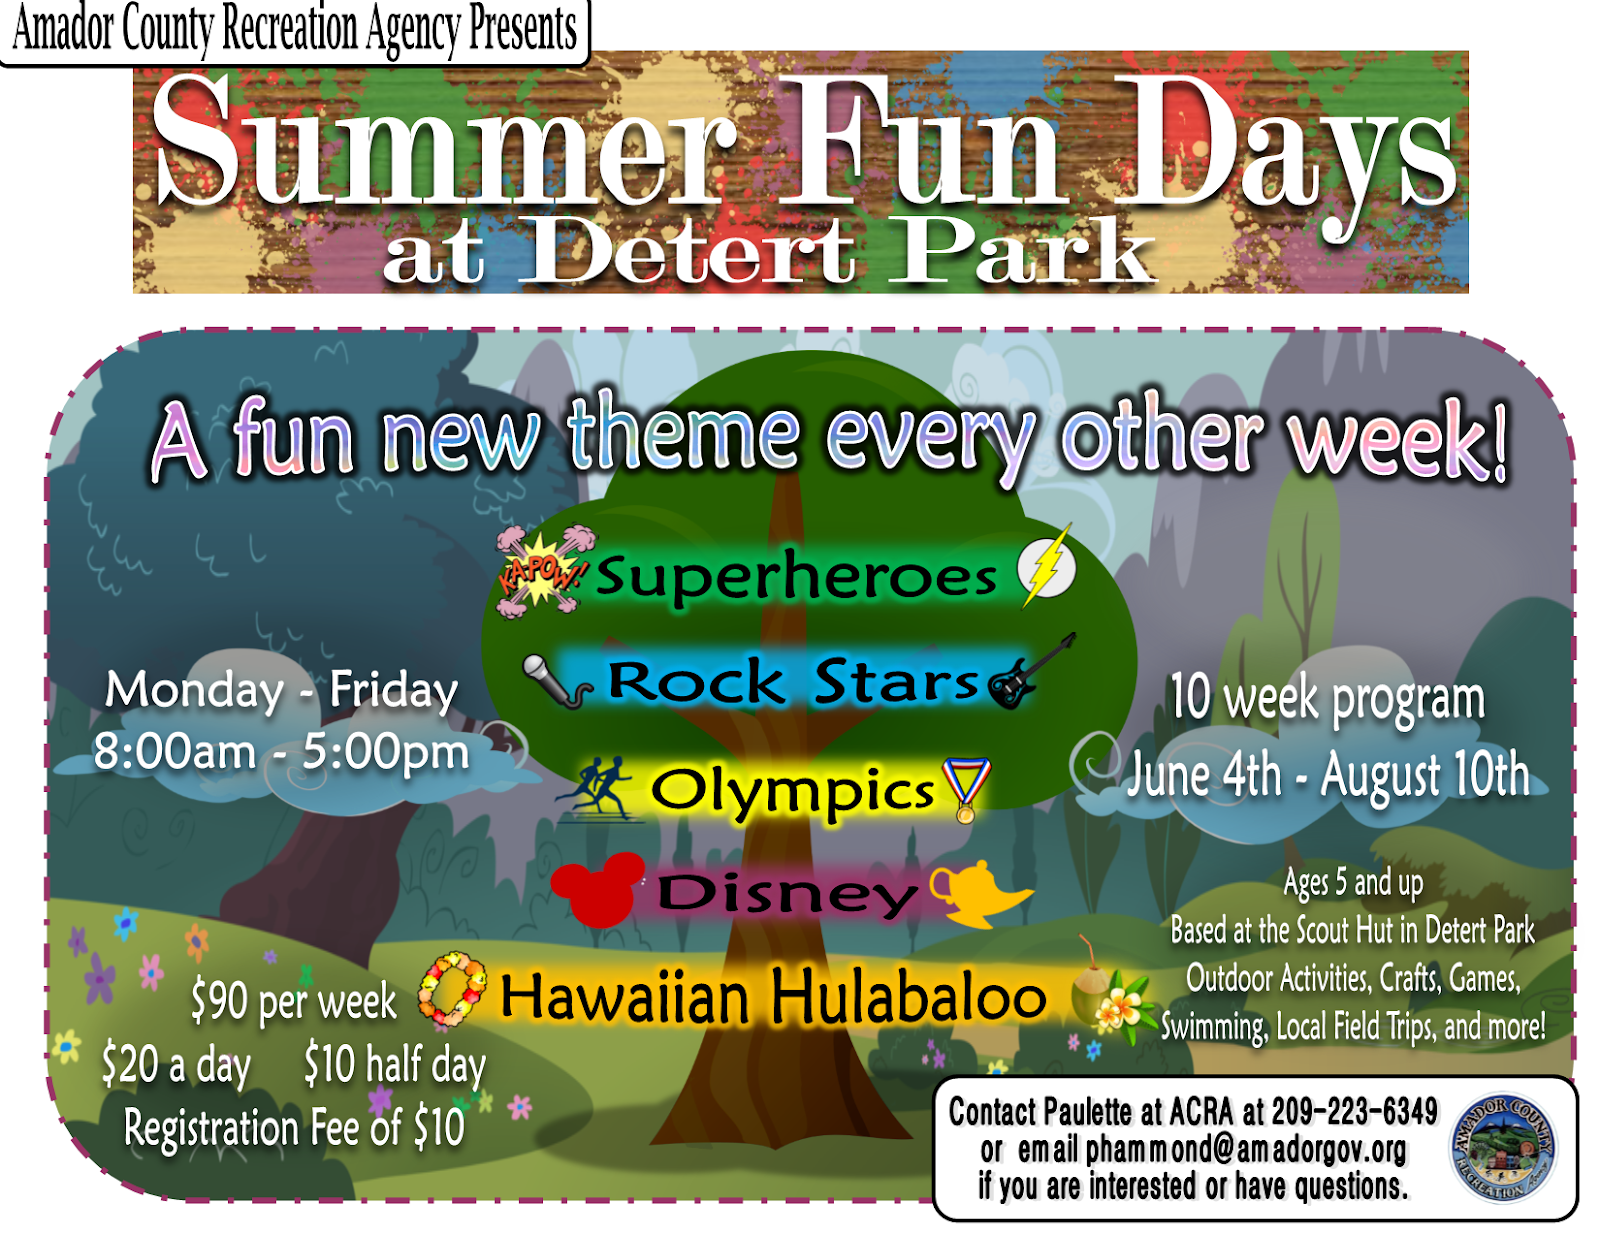 Summer Fun Days at Detert Park